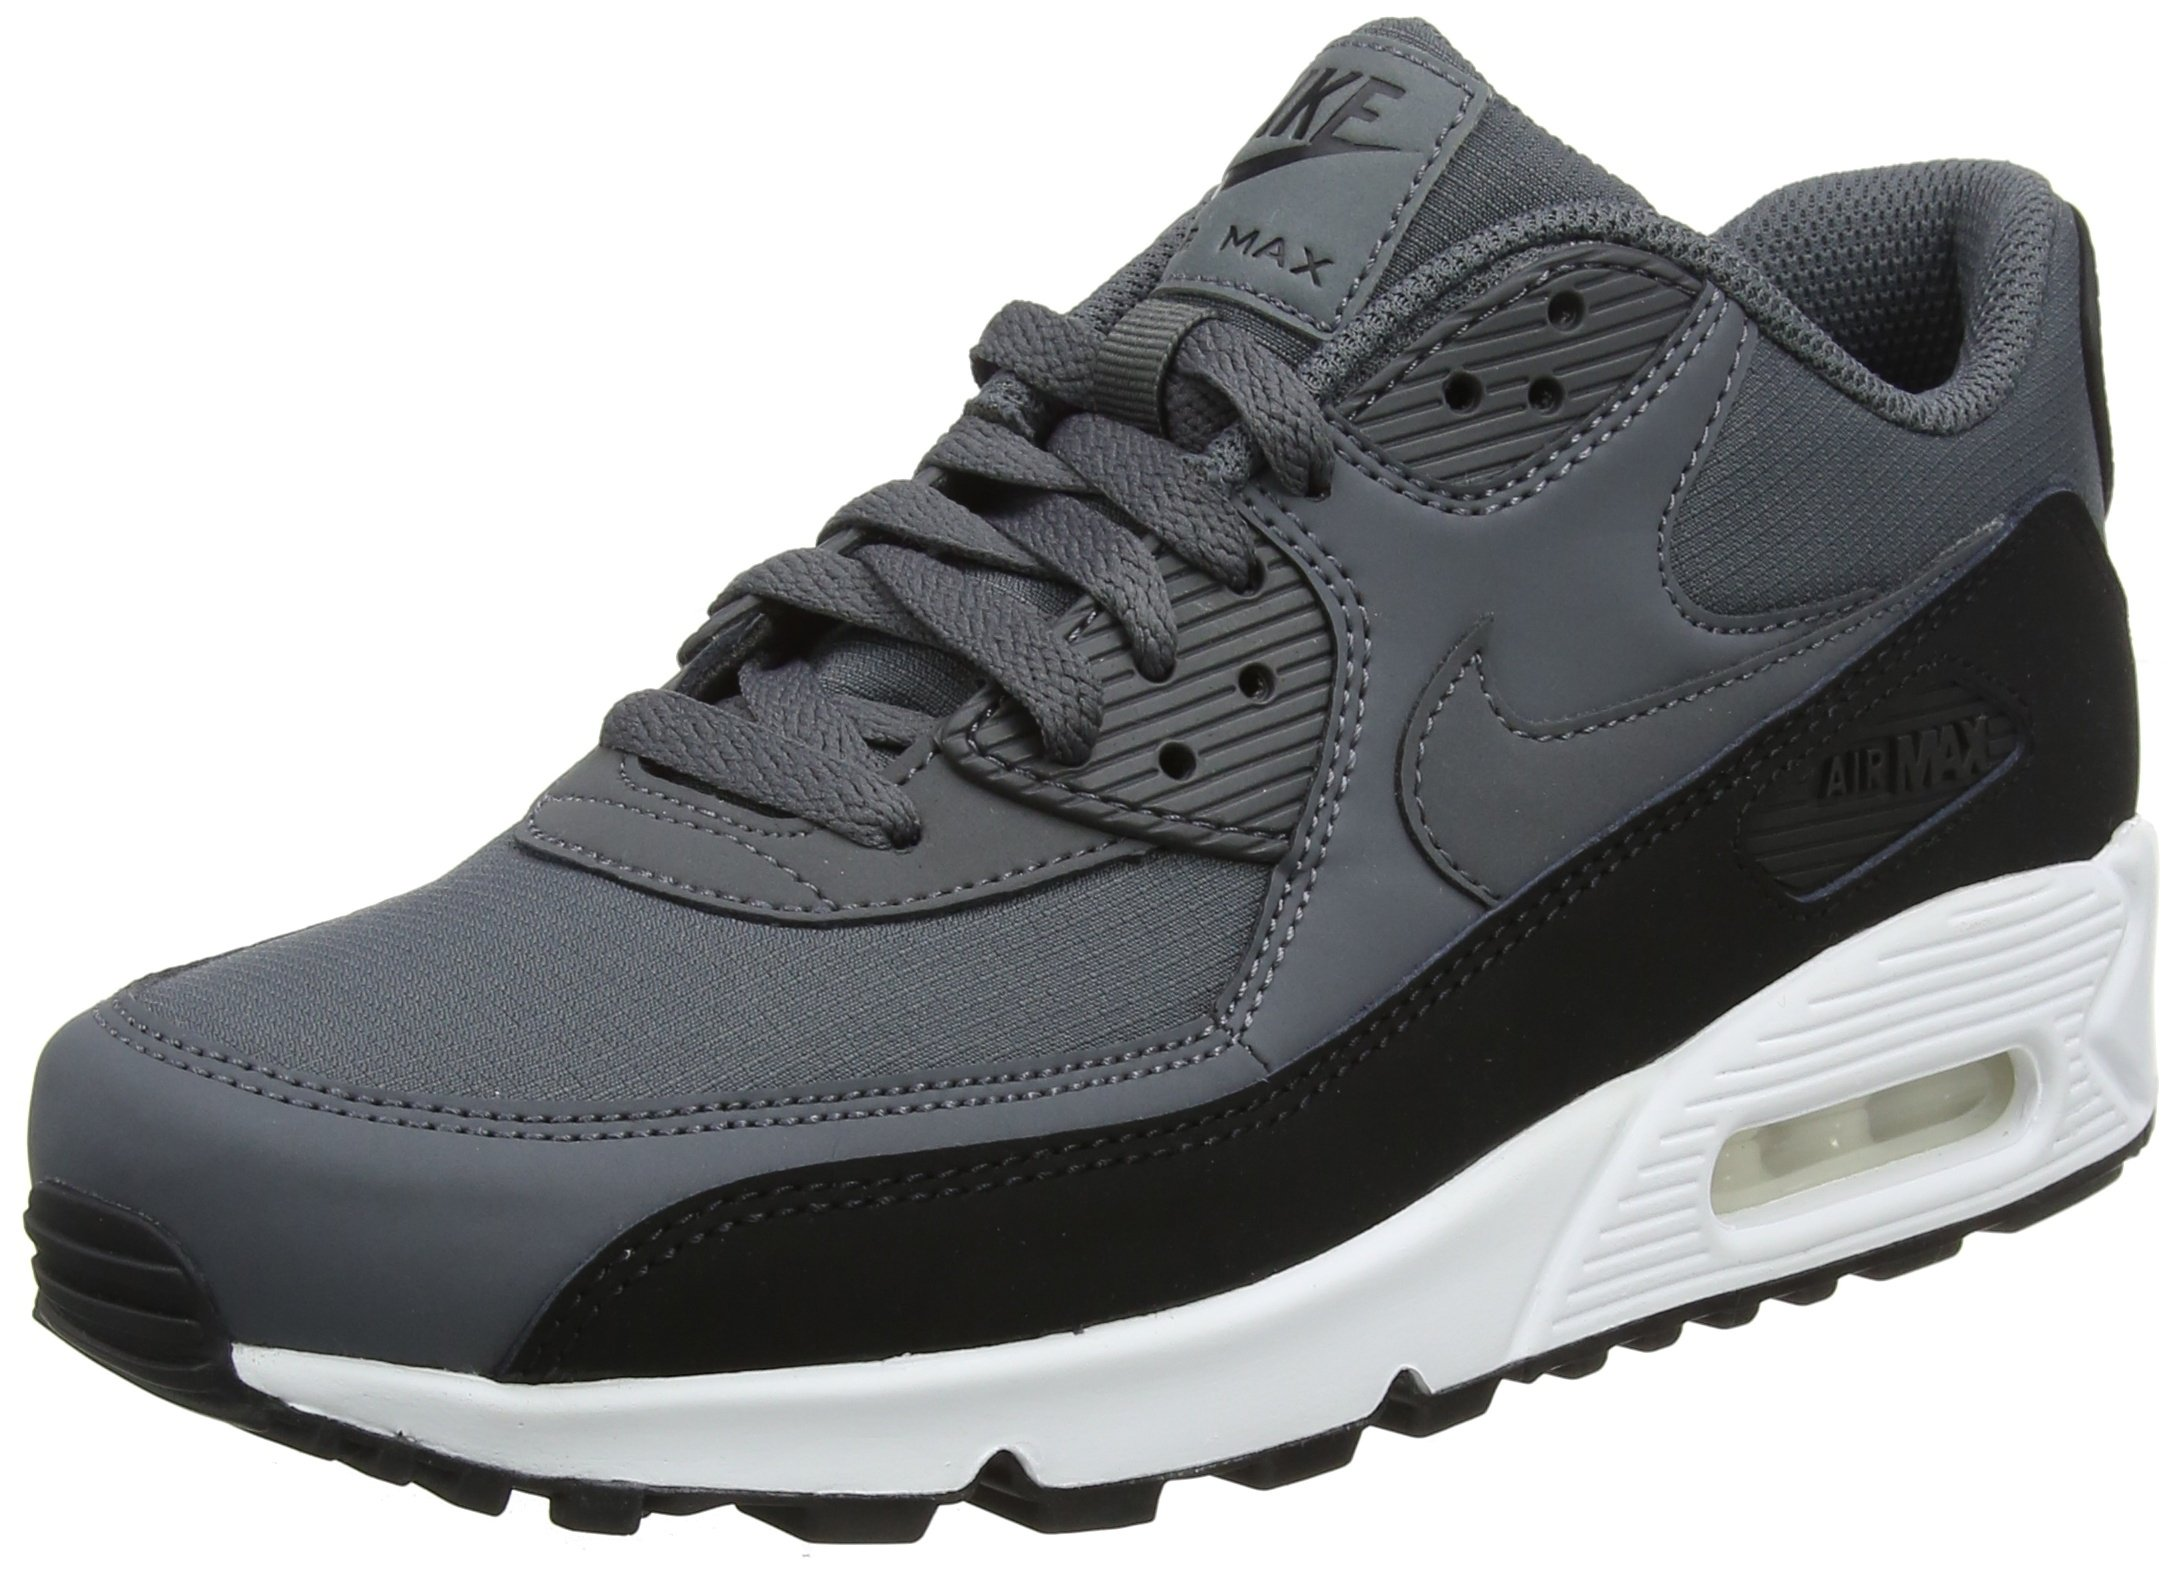 buy online 84641 2cfda Nike Men's Air Max 90 Essential Trainers Multicolour (Black/Dark Grey White  085) 10.5 UK 45.5 EU